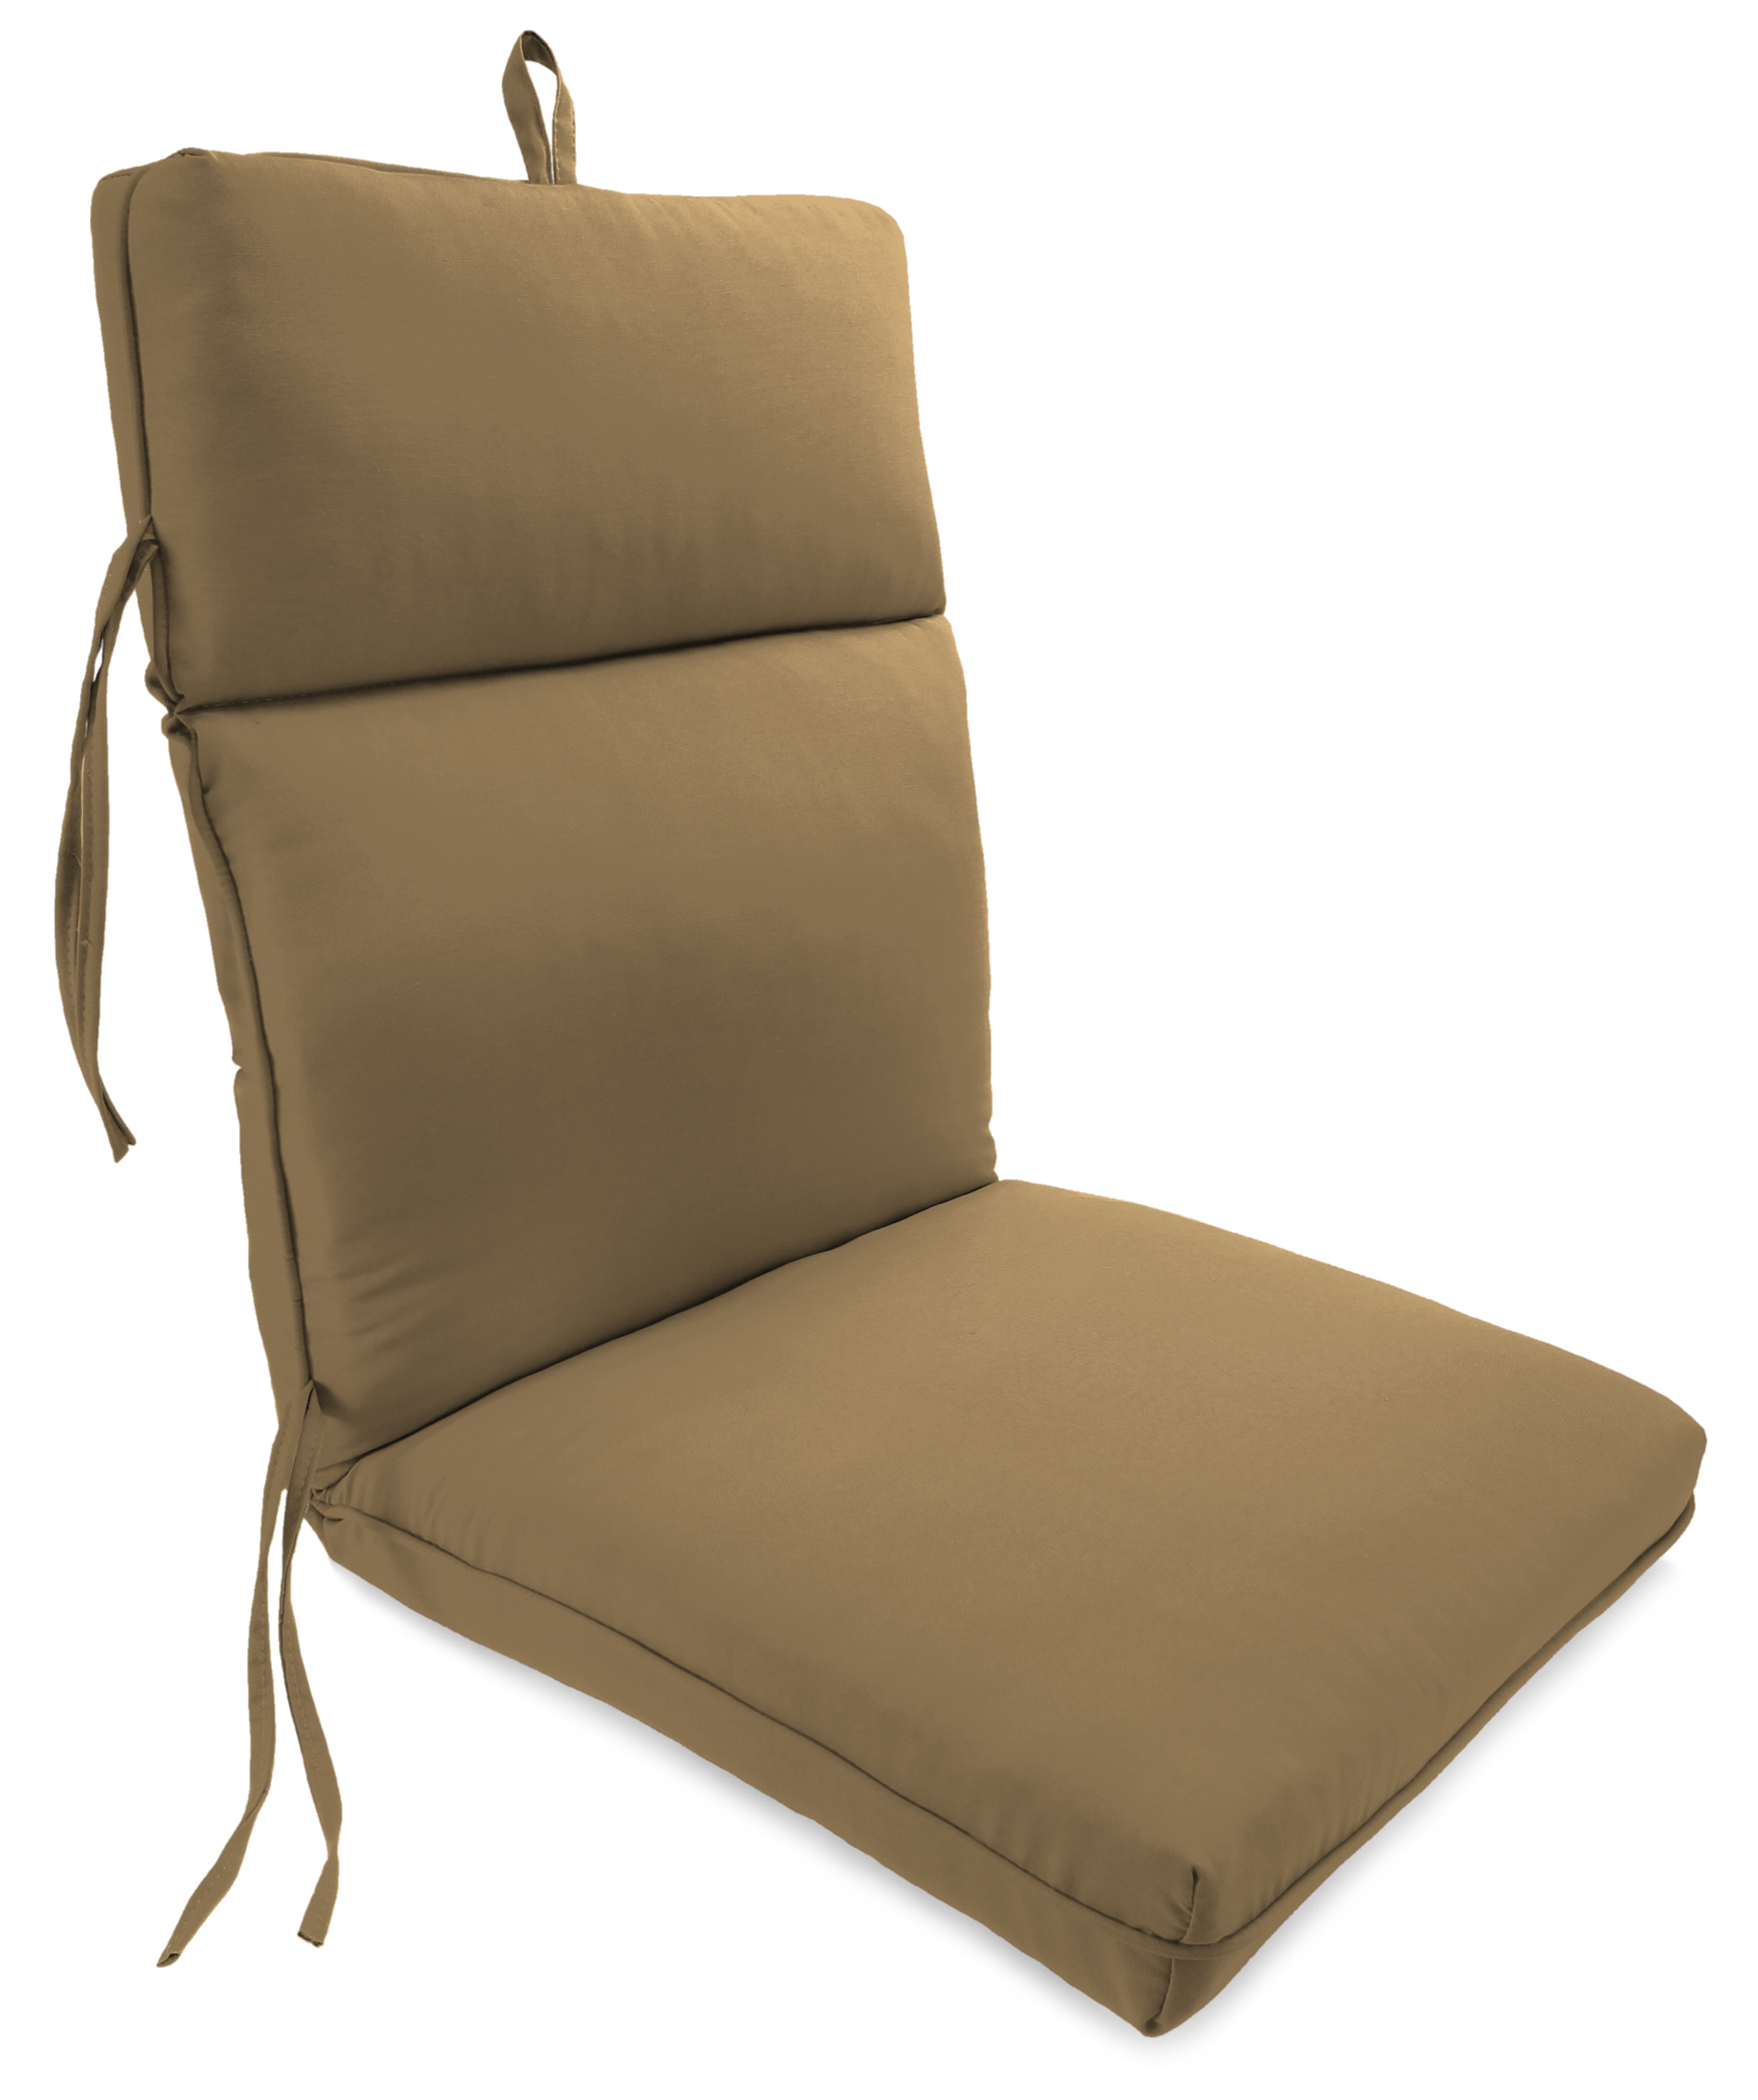 Ty Pennington Style Navarra Patio Chair Cushion Solid